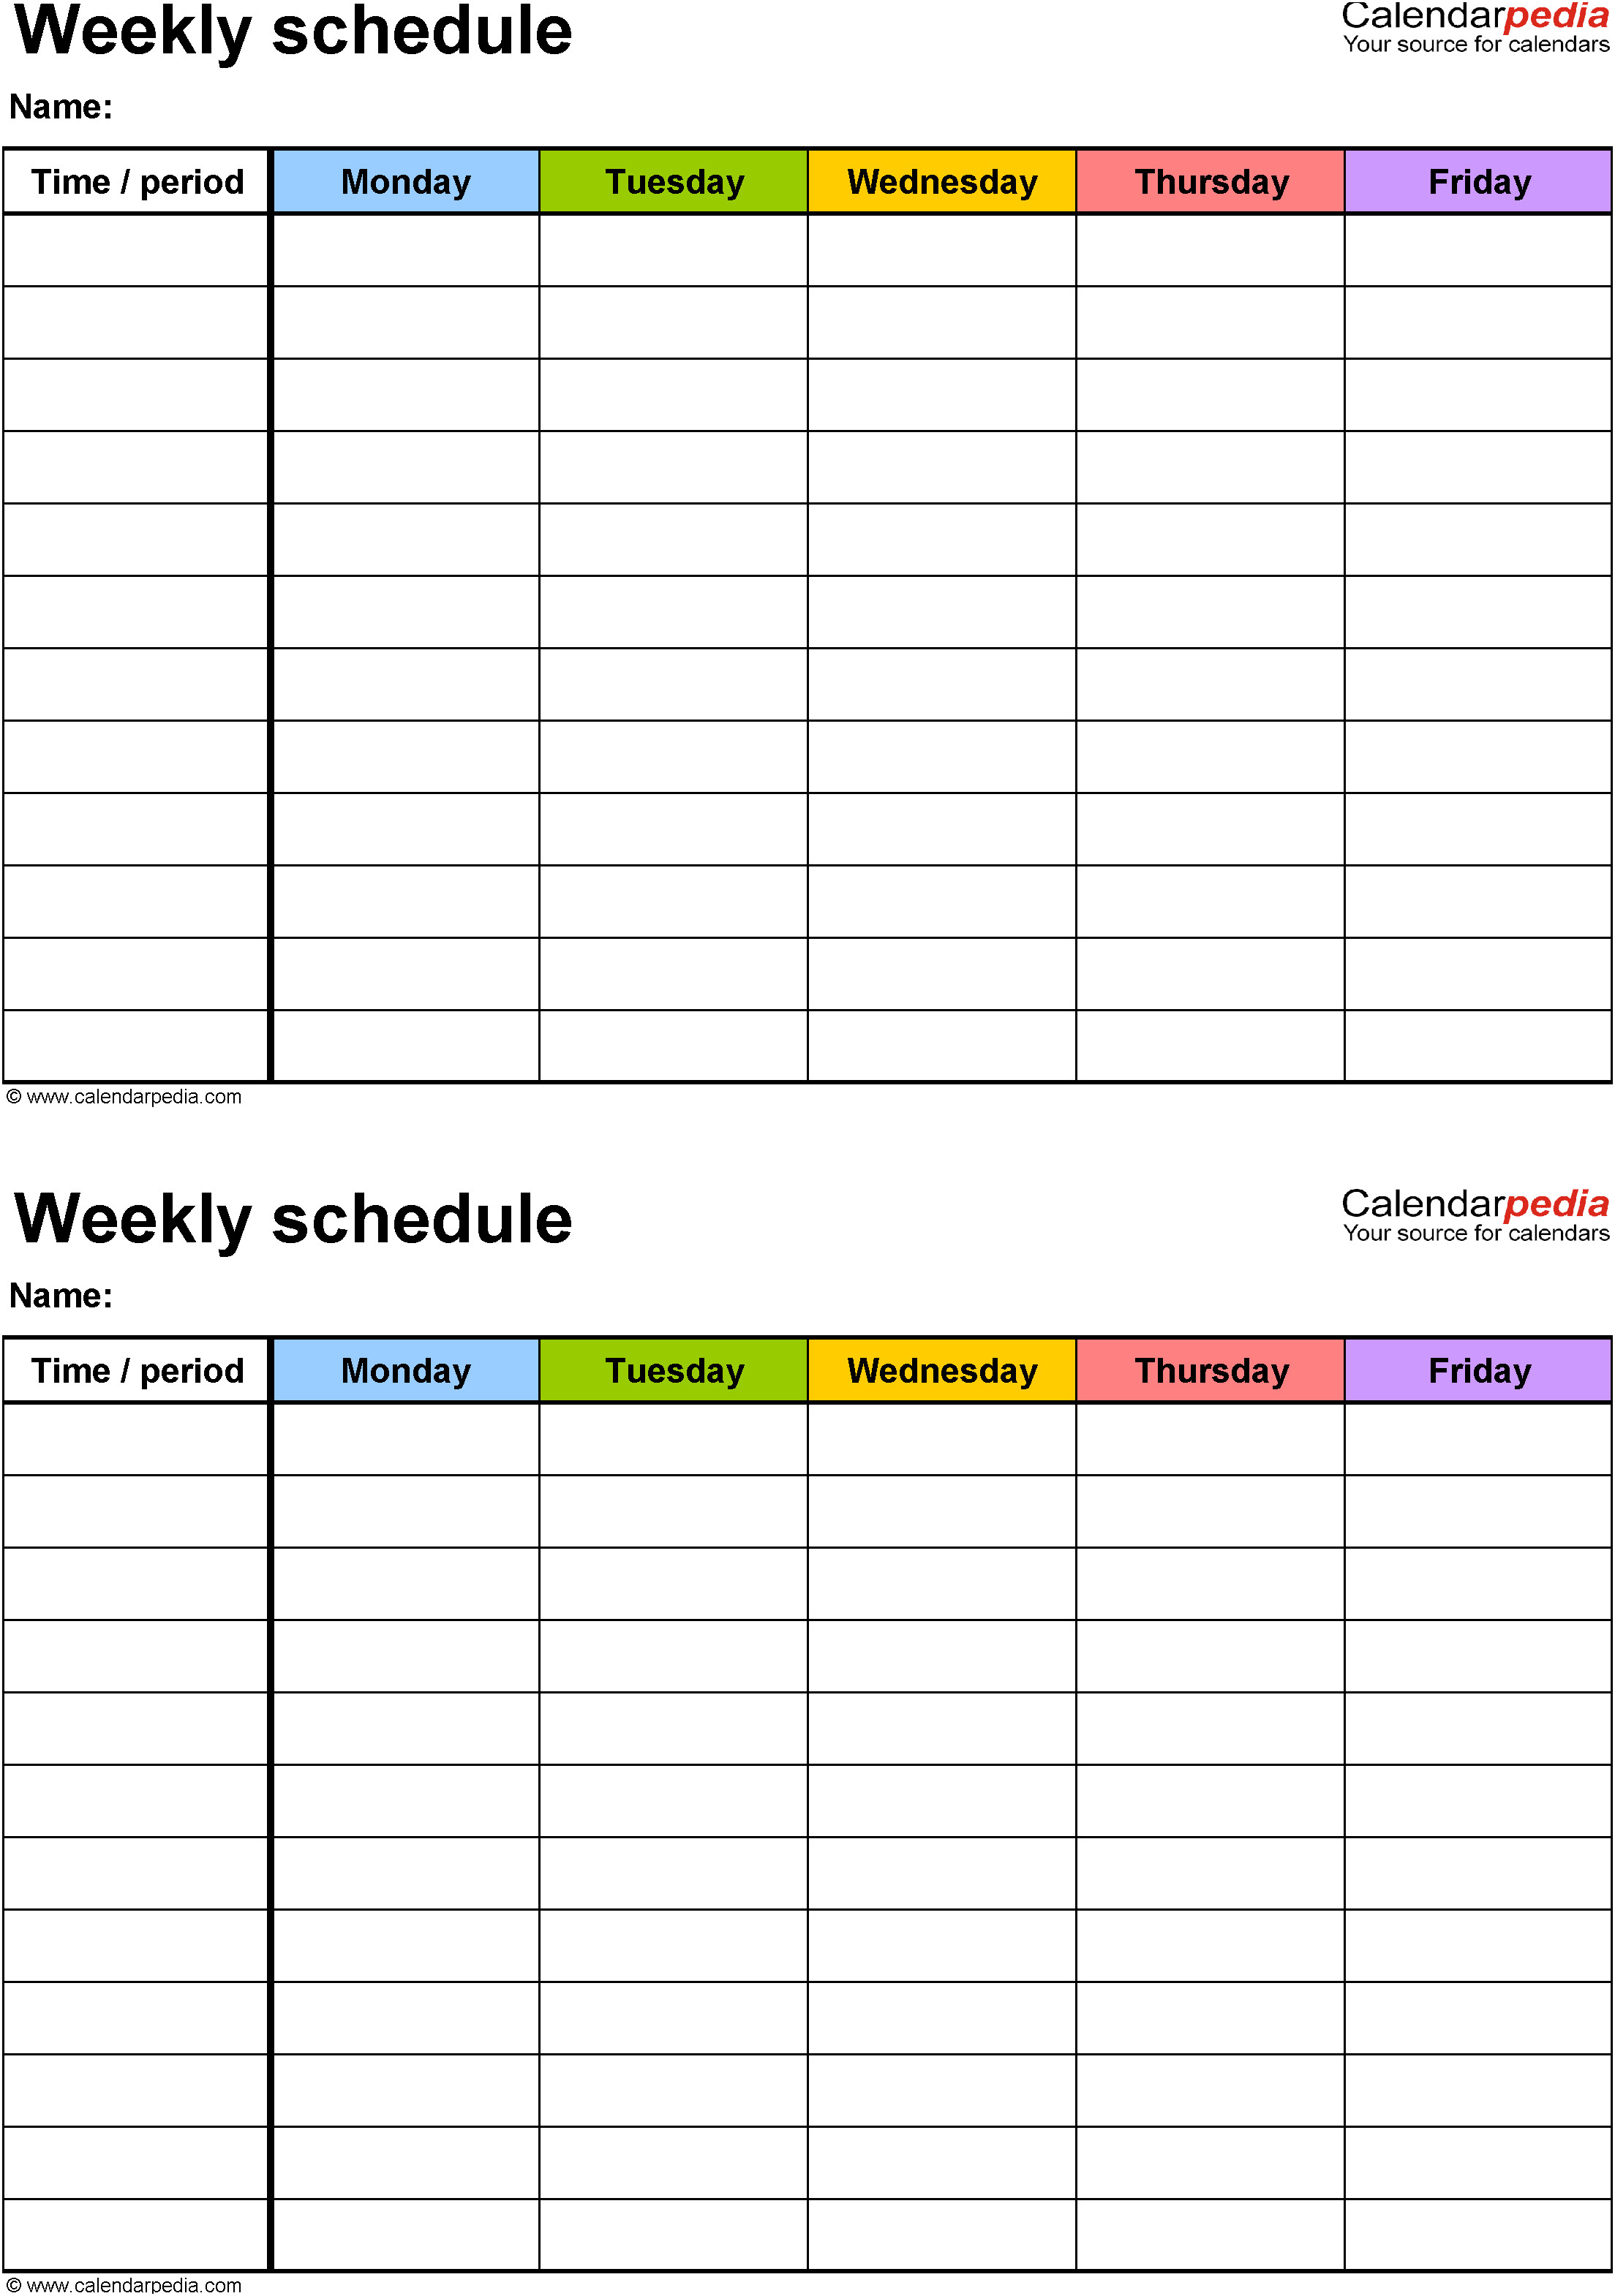 Weekly Employee Shift Schedule Template Excel Unique Weekly Employee For Employee Shift Schedule Template